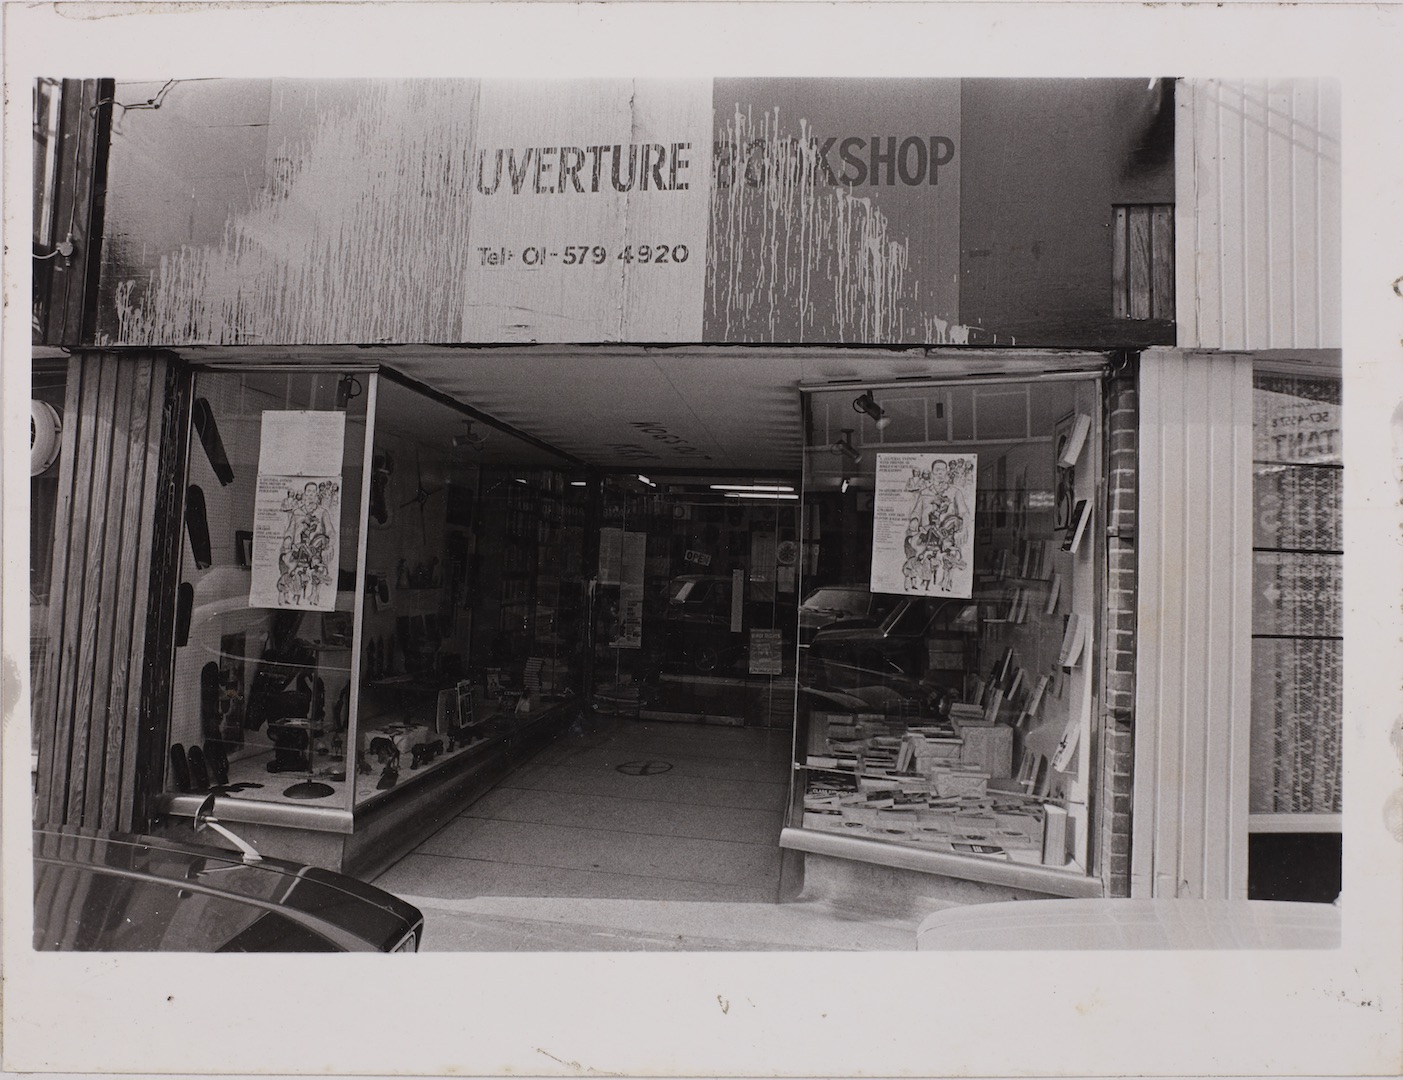 08 Racist Attack on Bogle -L'Ouverture Bookshop. c1970s. Huntley Archives at London Metropolitan Arc